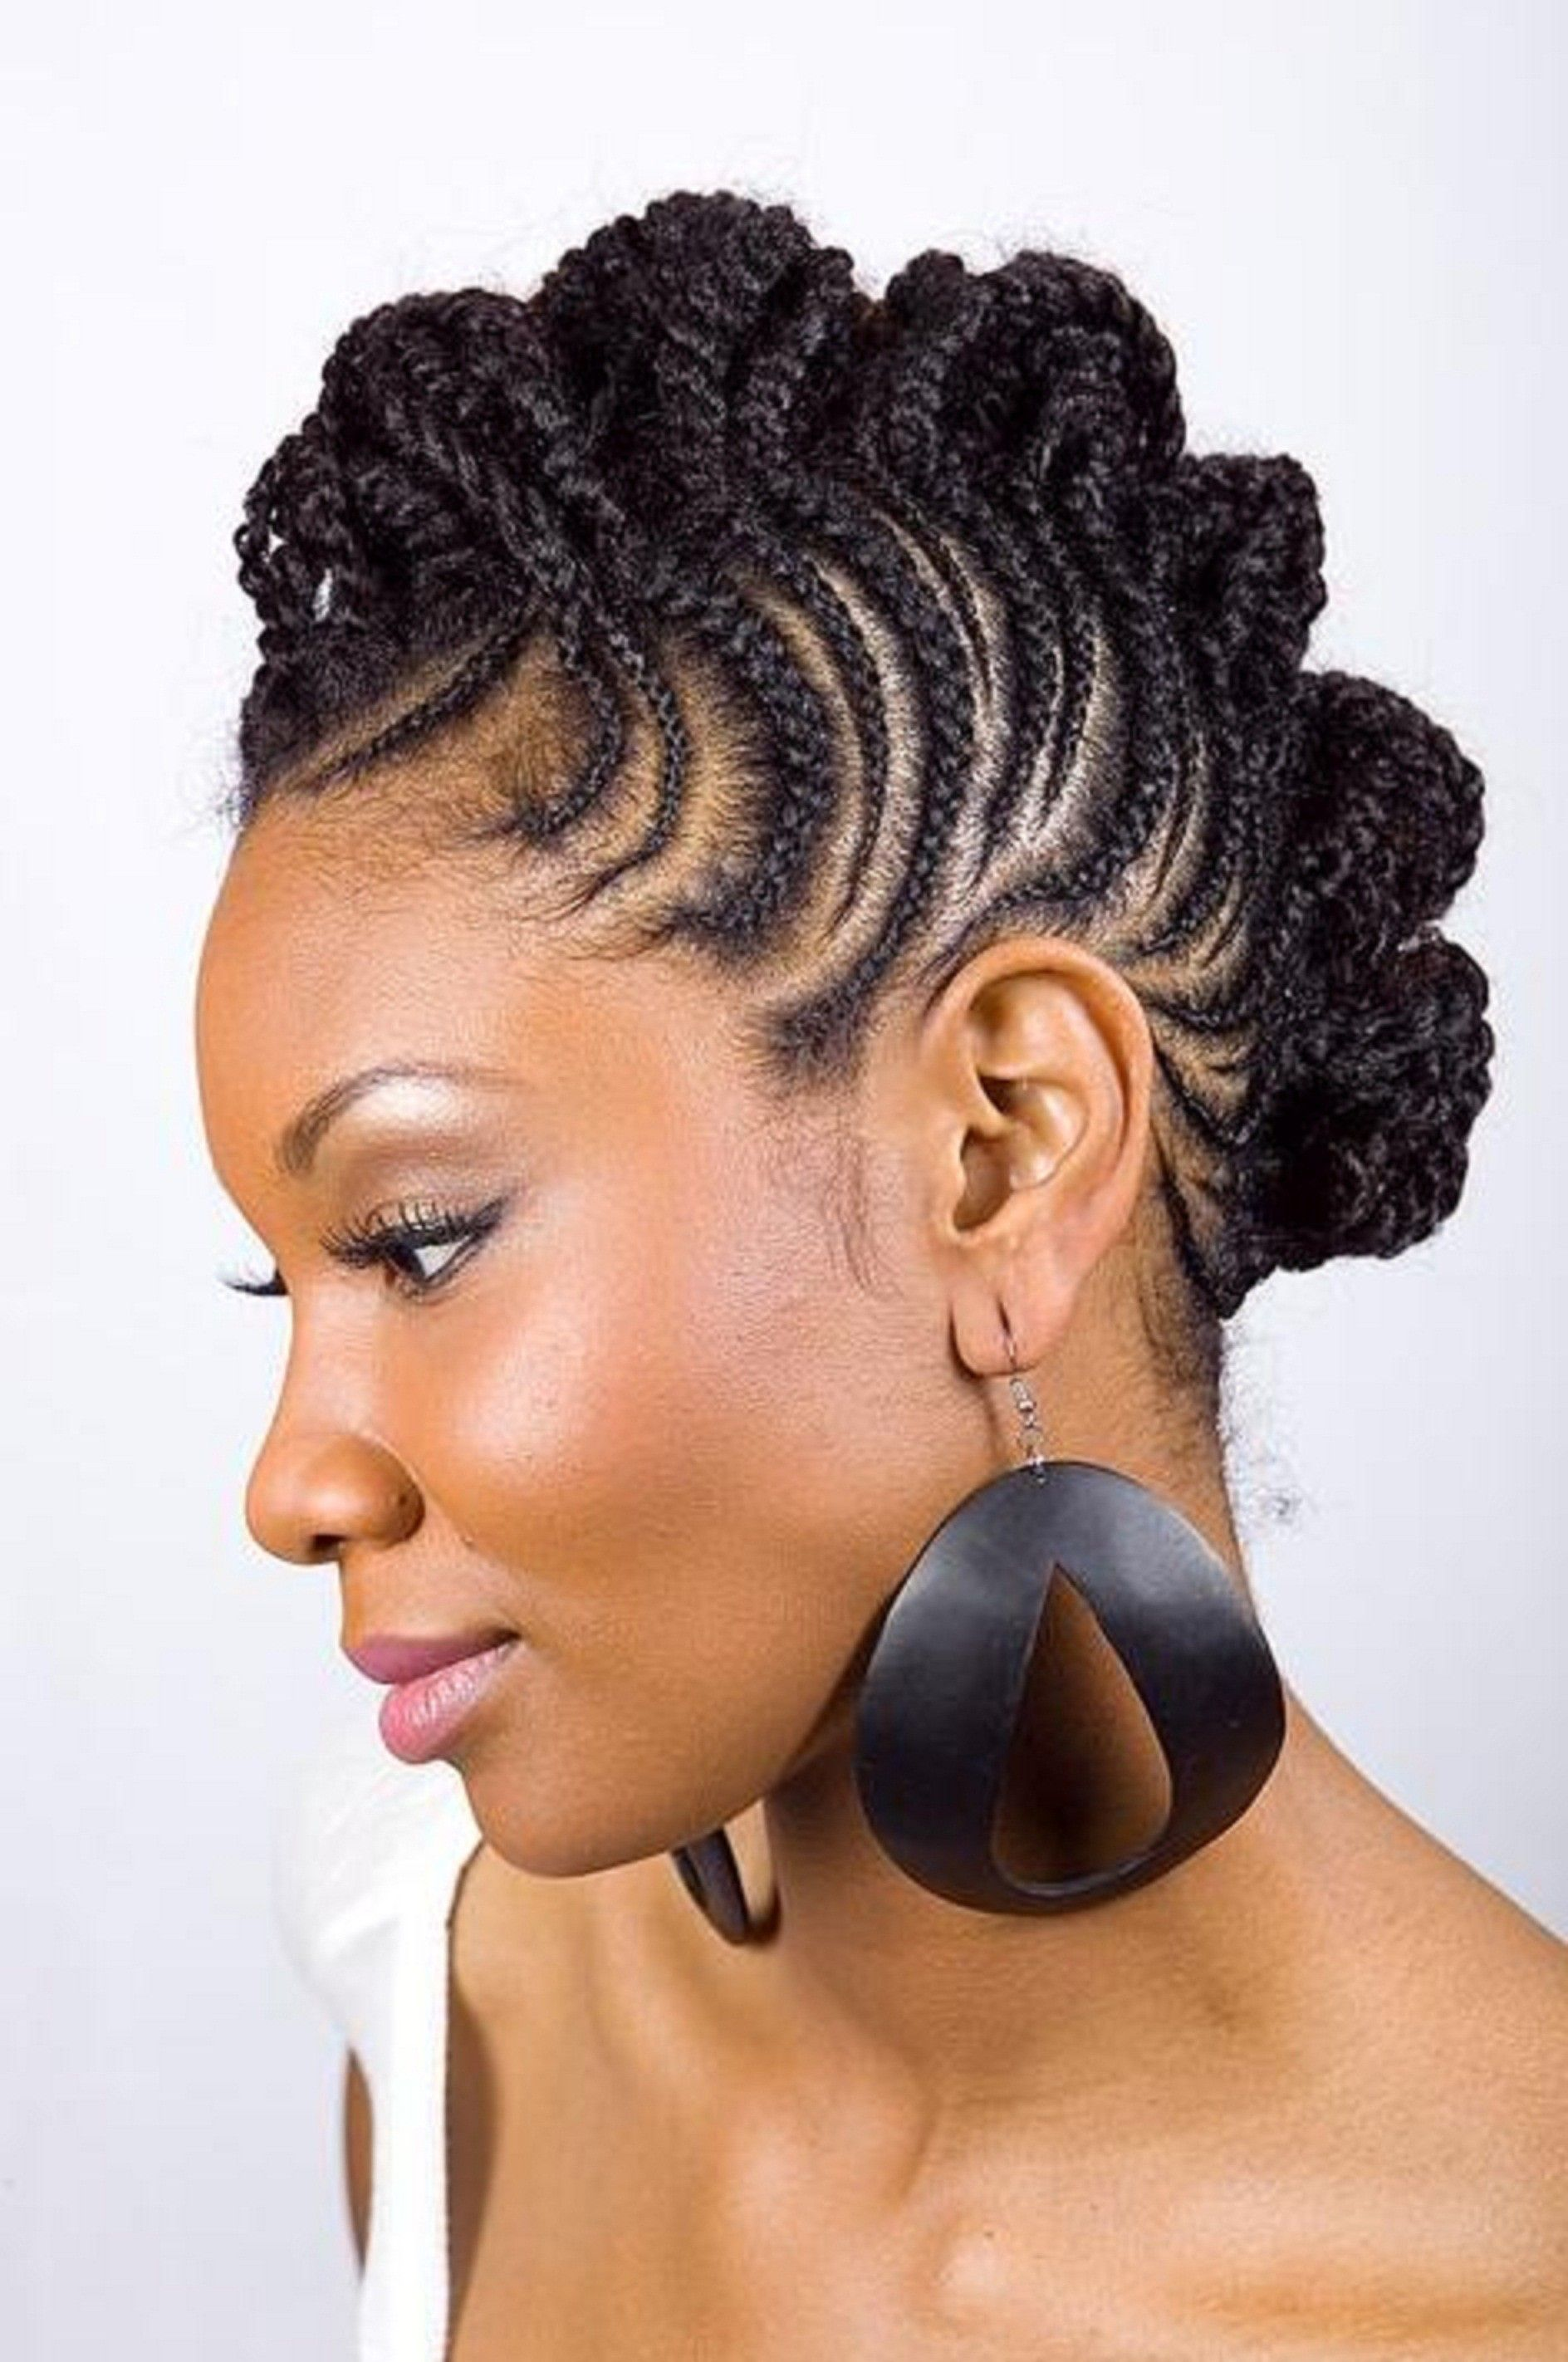 Trending hairstyles in kenya latest hairstyles in kenya